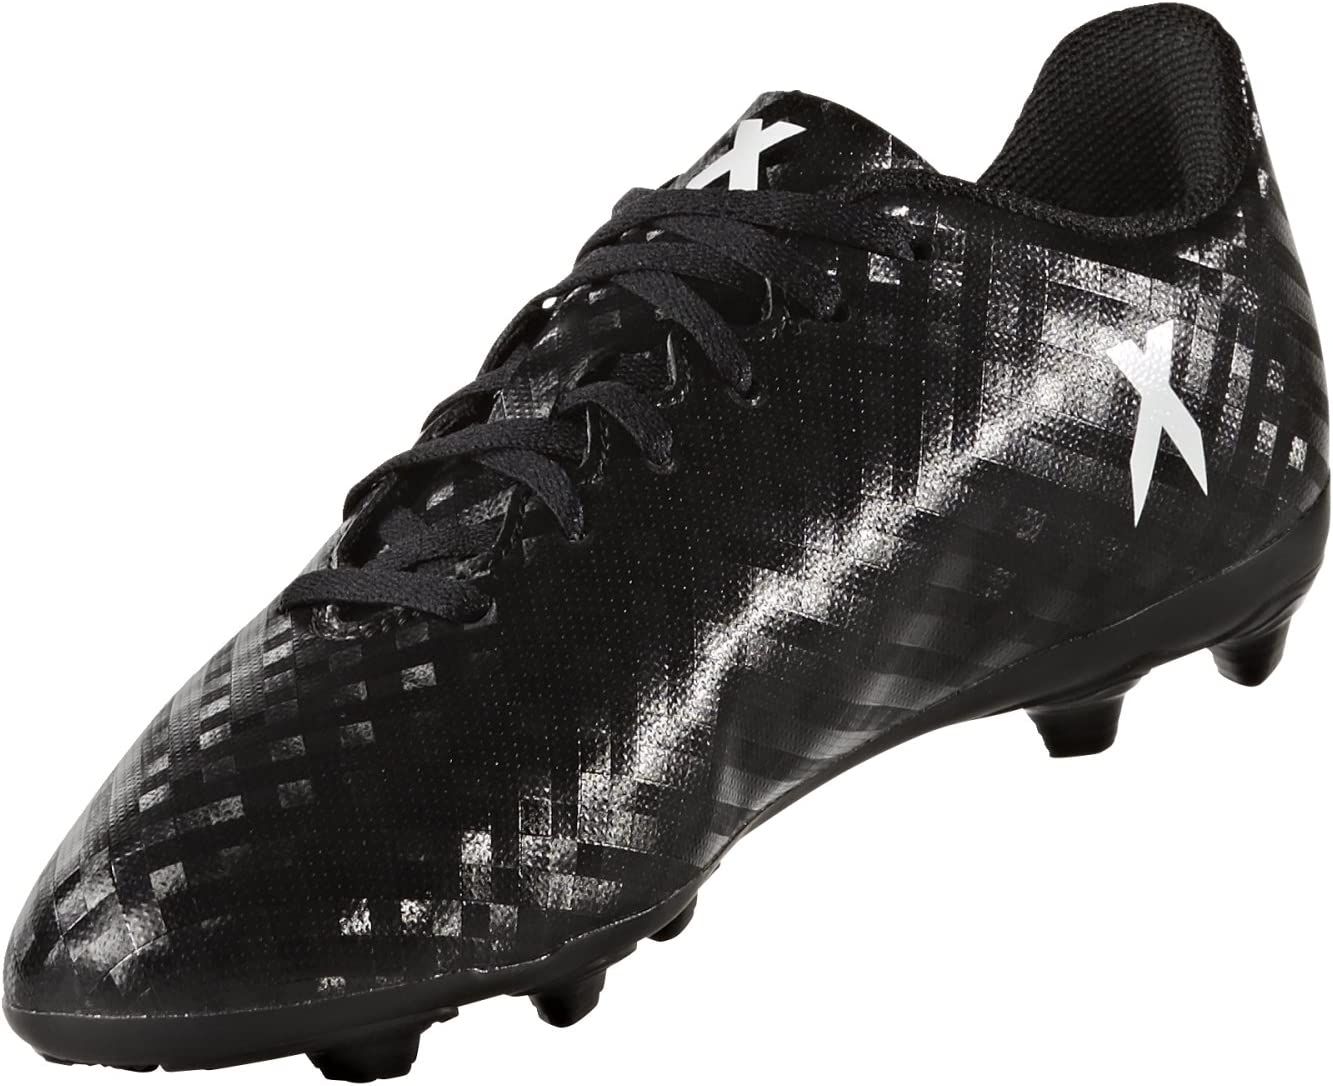 Furioso Interacción pase a ver  adidas X16.4 Fxg J Black/White 1: Amazon.co.uk: Sports & Outdoors